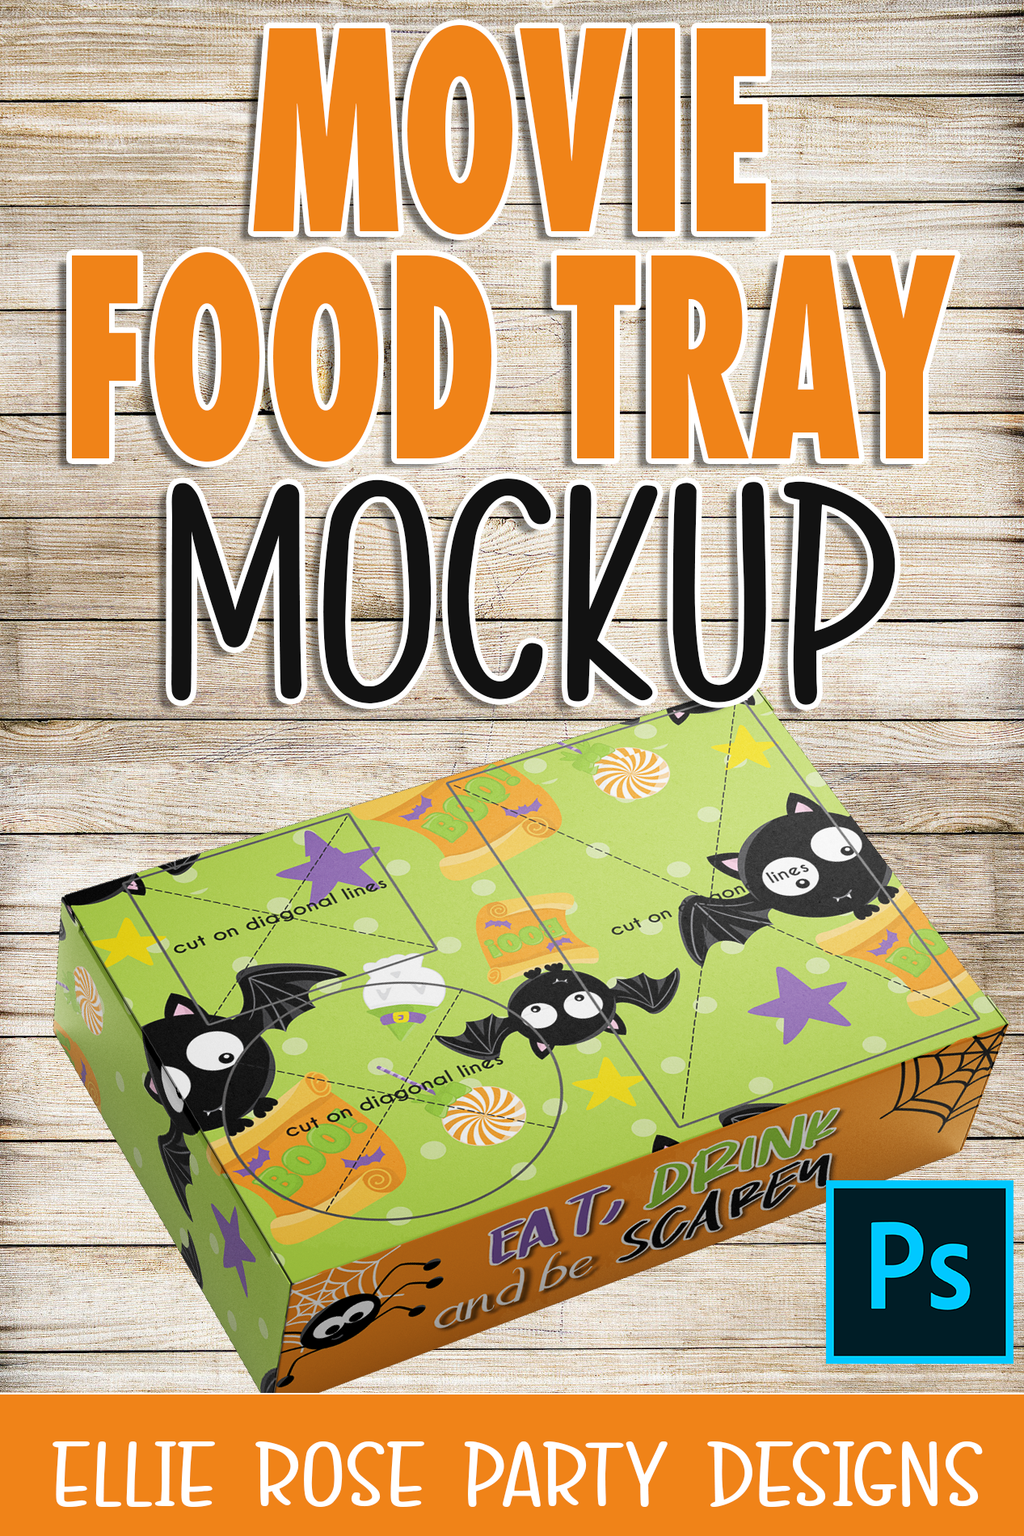 Old Movie Food Tray Box Mockup ** Photoshop Users **